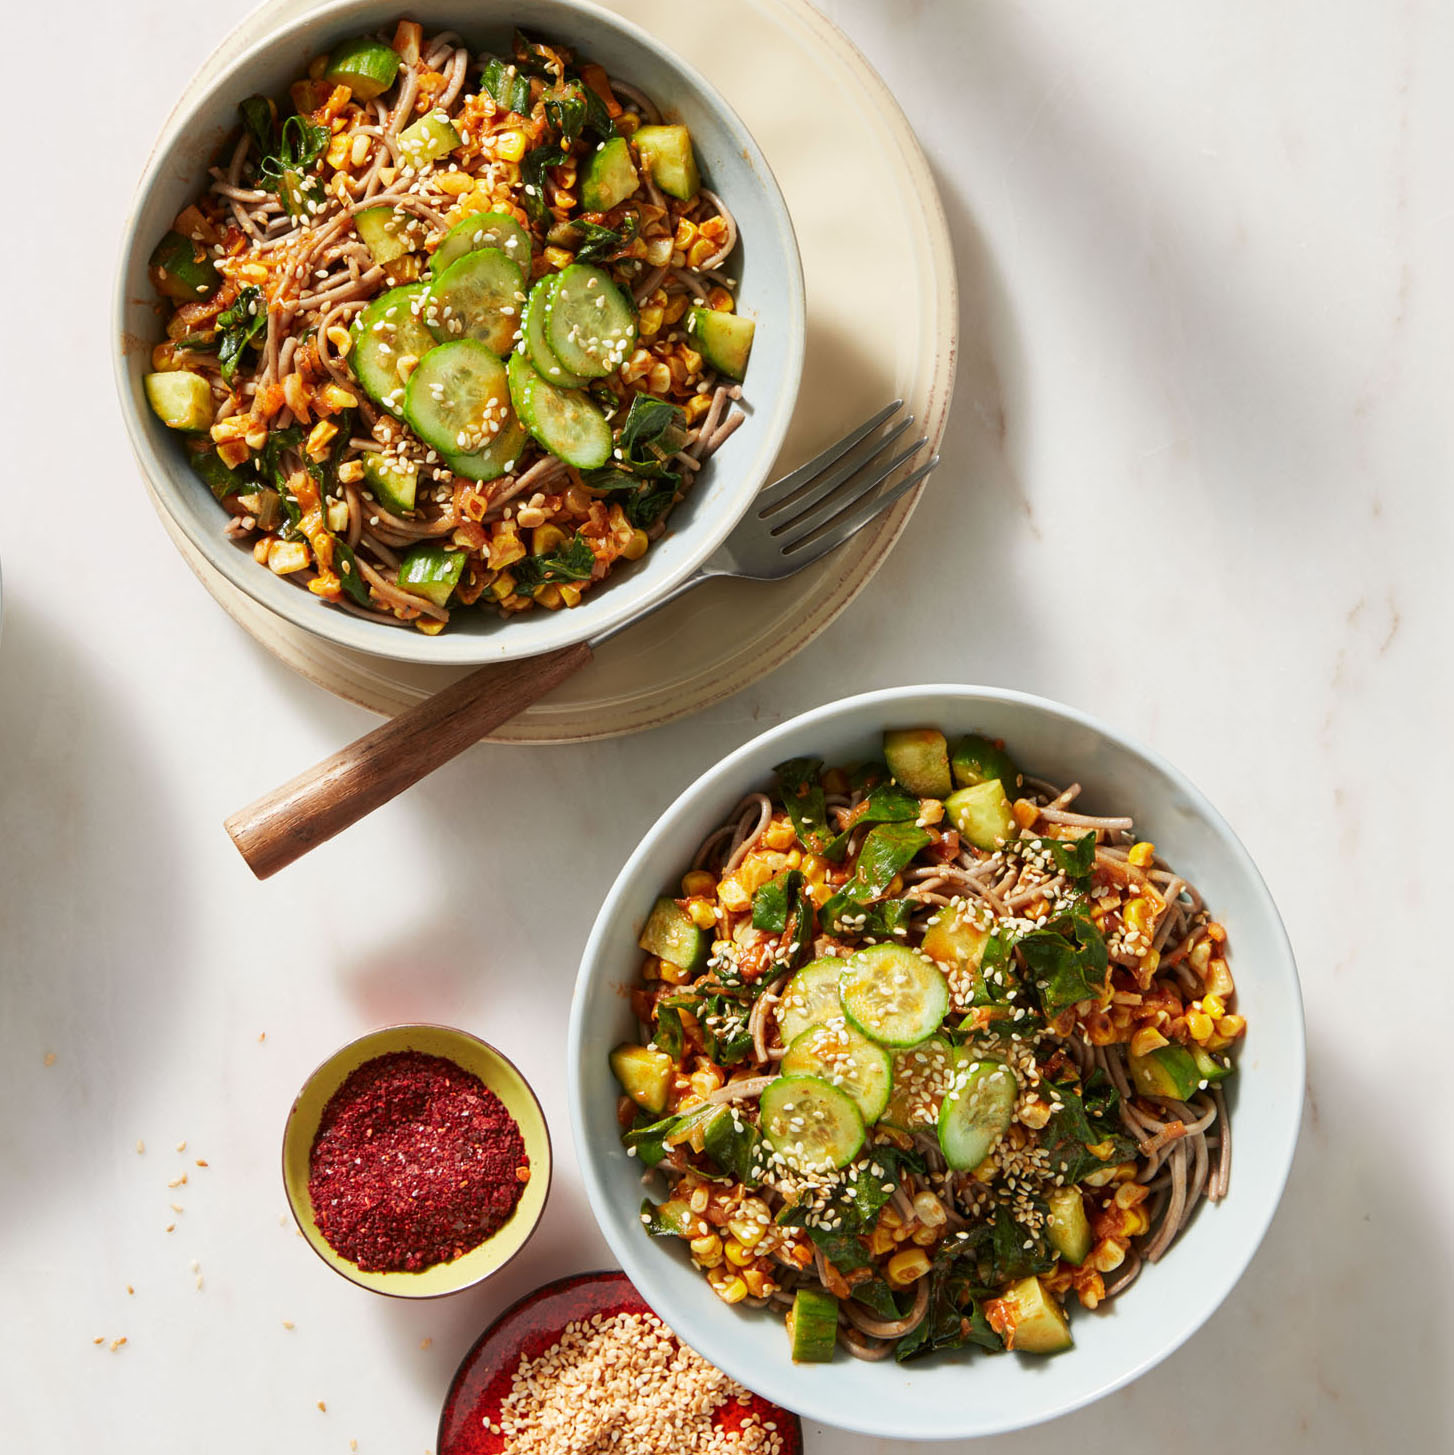 Rachael Ray's Spicy Korean-Style Soba Noodles with Corn, Leeks, Cucumber & Kale